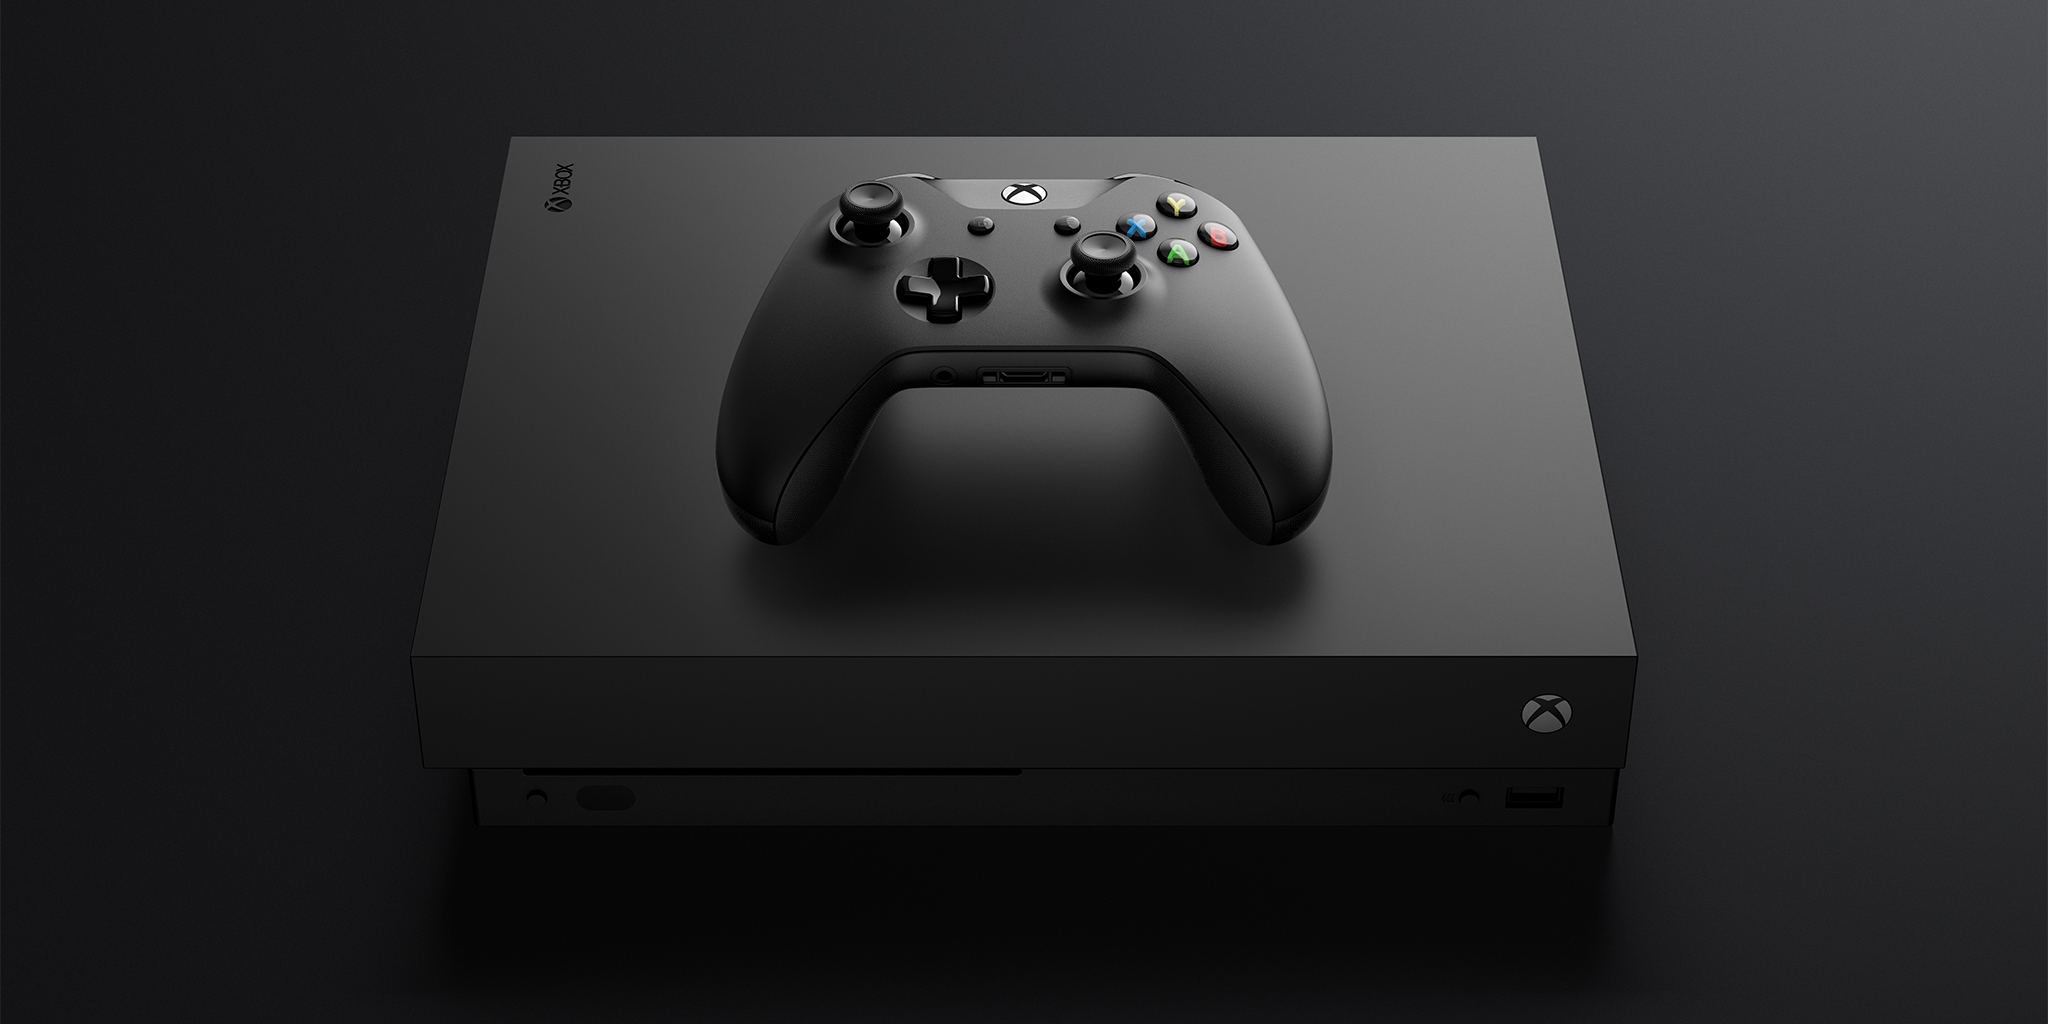 Bring home an Xbox One X 1TB Console for just $300 shipped today (Reg. up to $499)